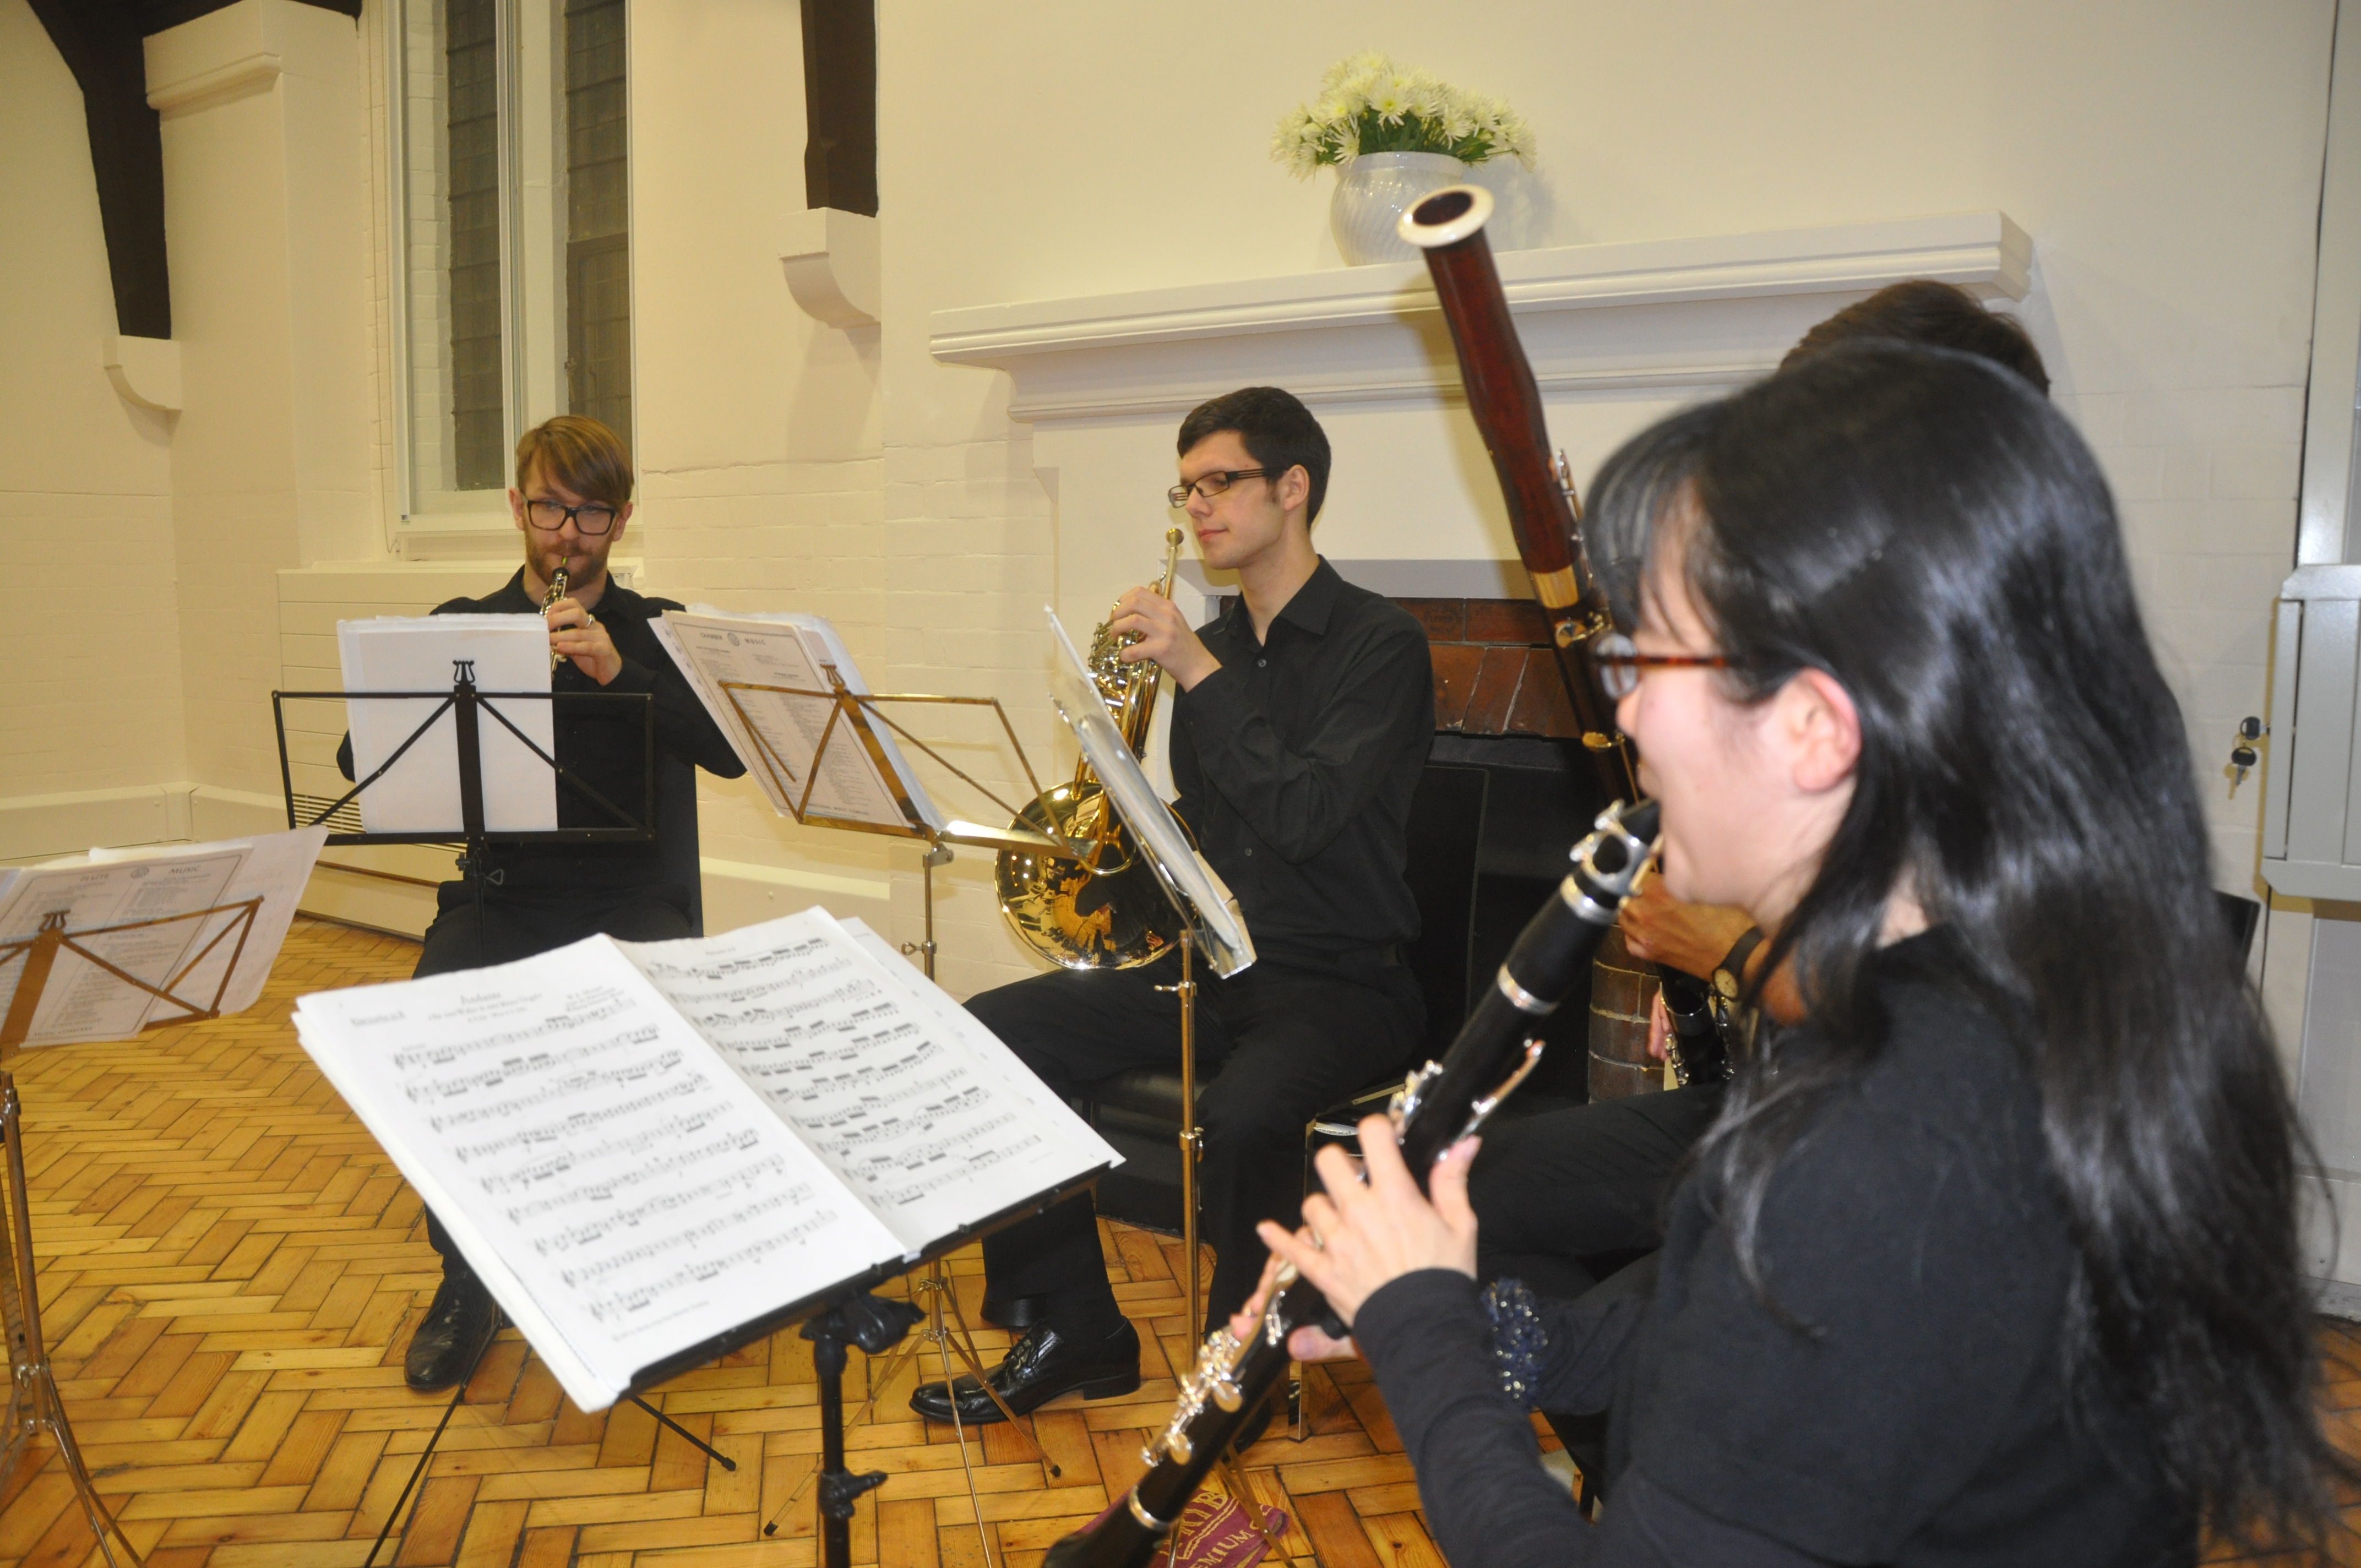 Musicians playing at the opening of the new parish centre of St James the Less, Pimlico